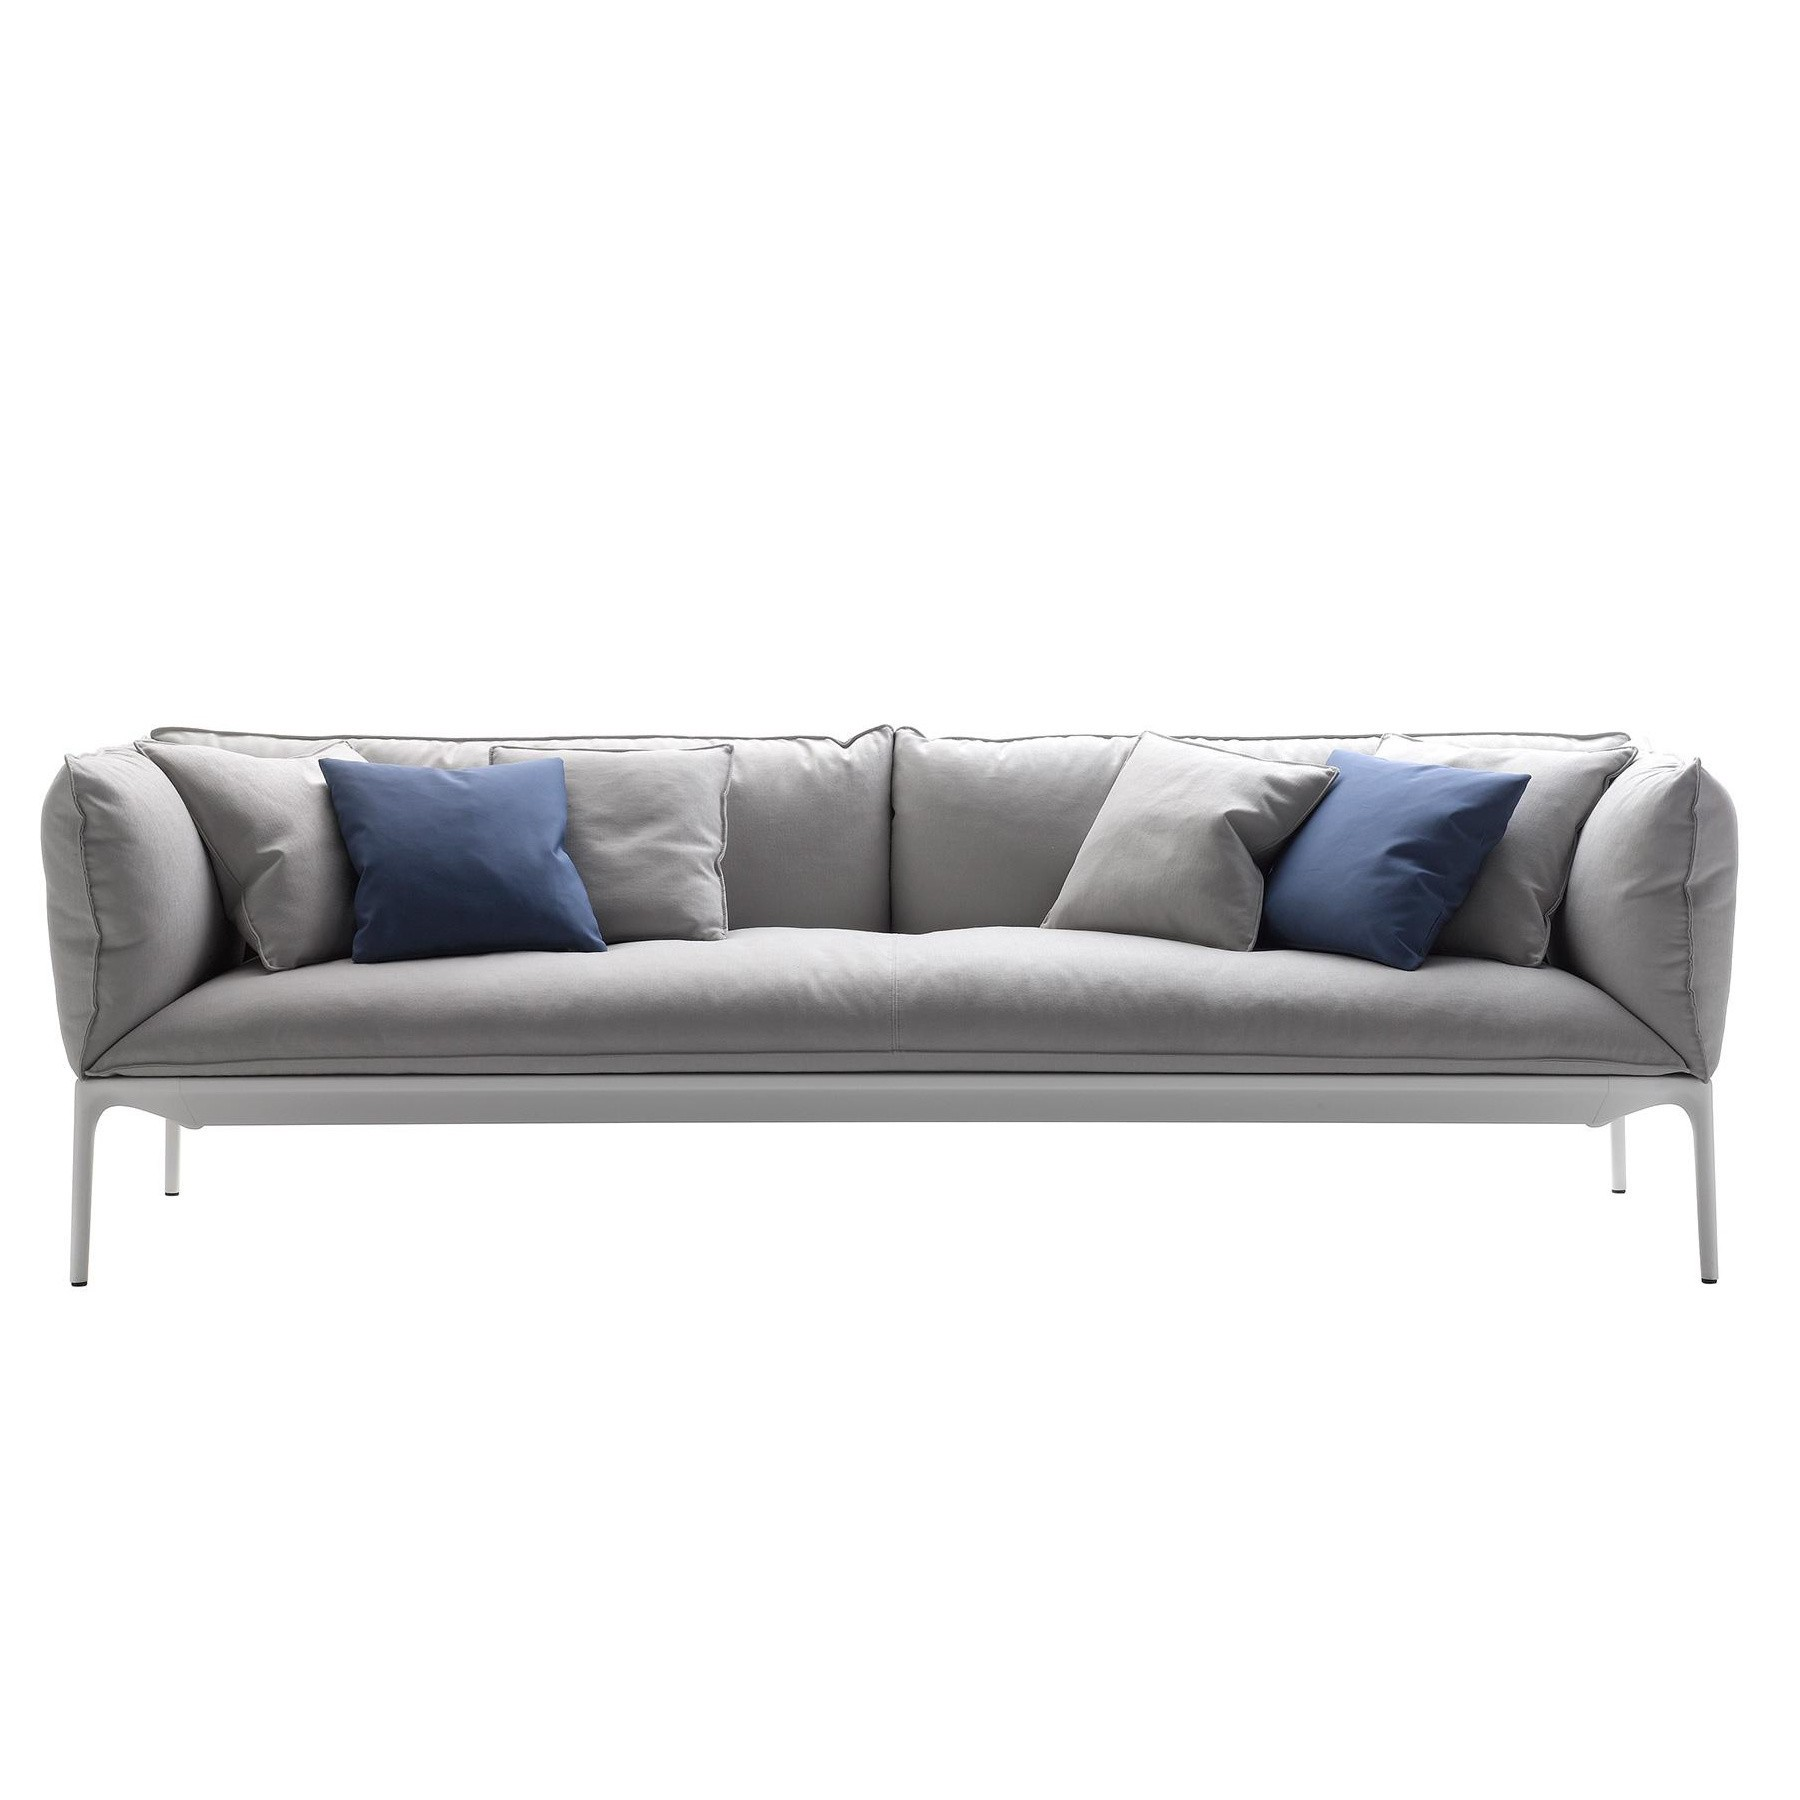 mdf italia yale s3 sofa 3 seater down filling ambientedirect rh ambientedirect com